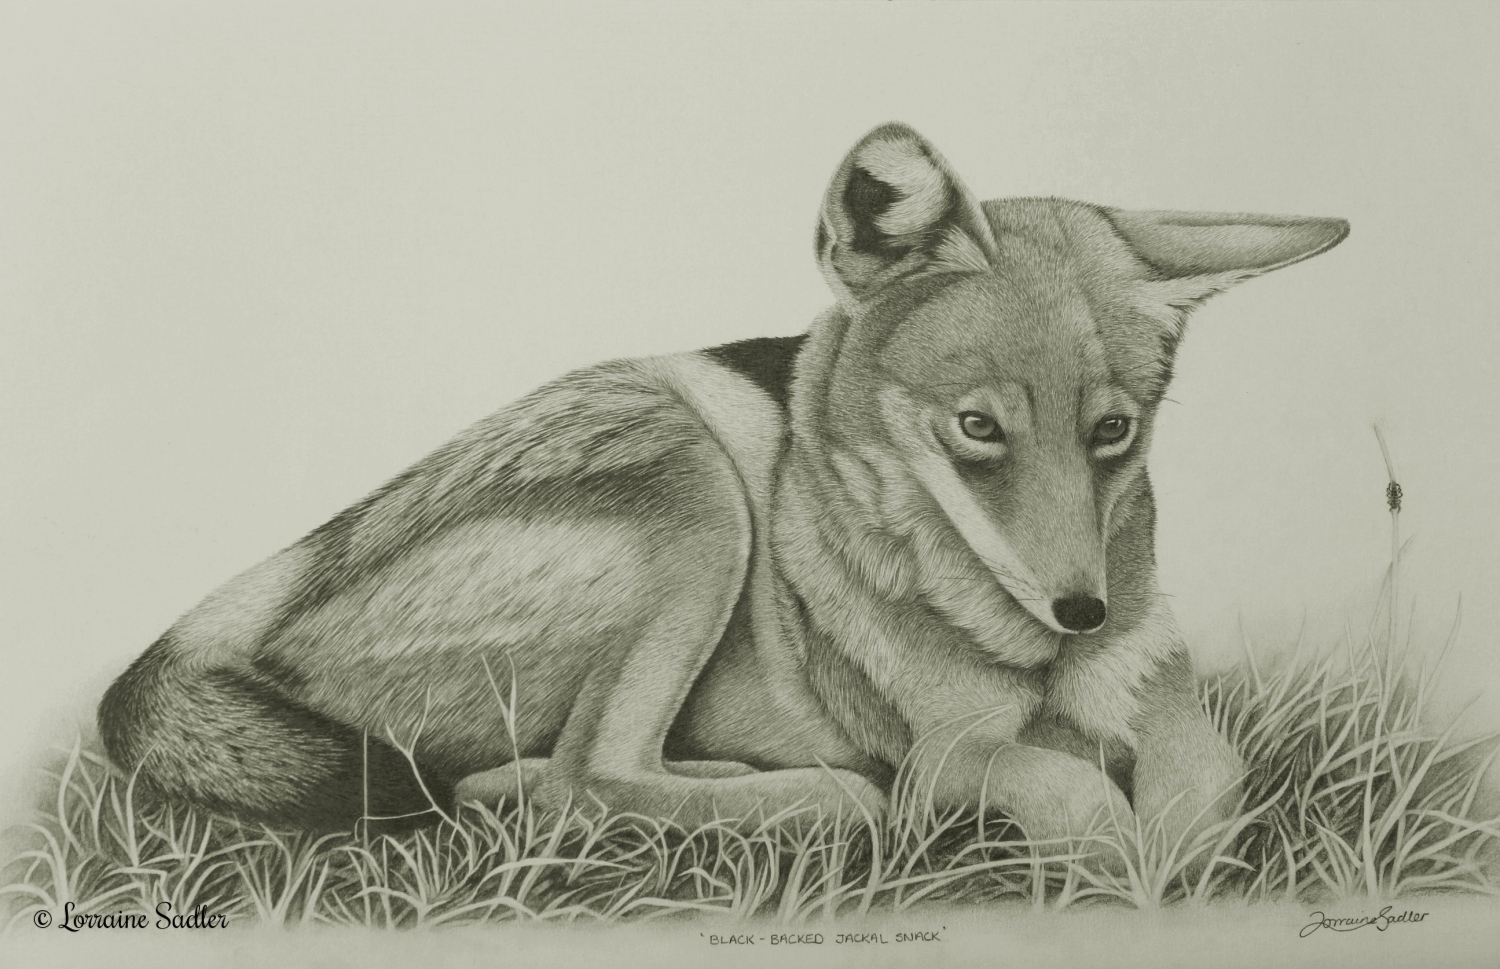 Black Backed Jackal Snack (20 x 10.5inches) £1,200